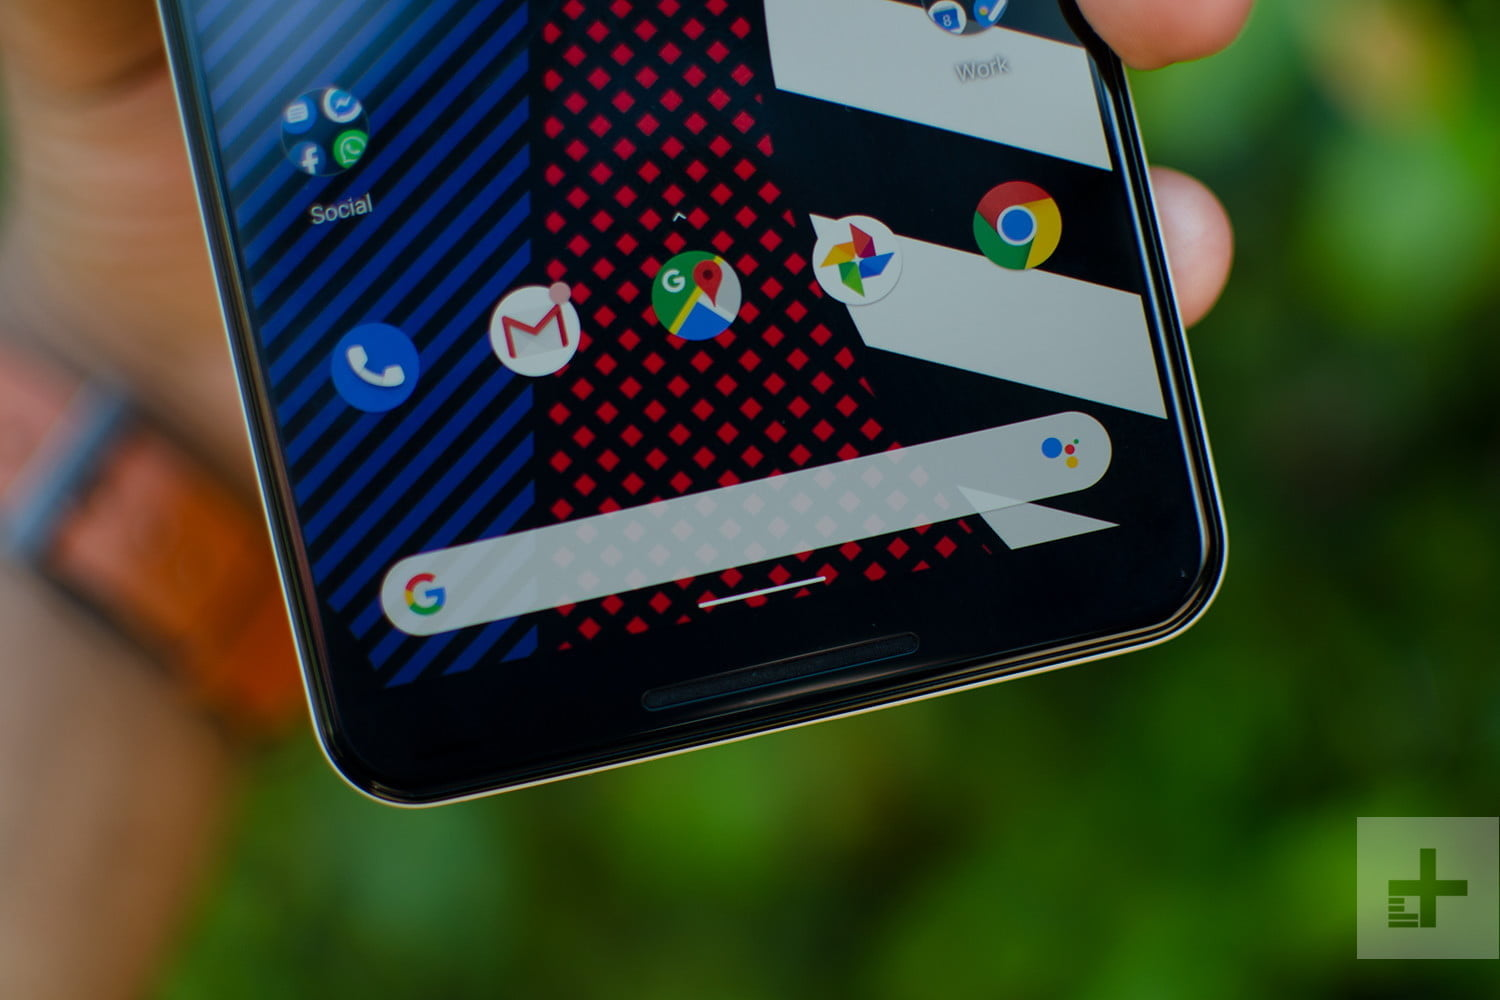 Android 10 Q Hands On Review 5g Privacy And More